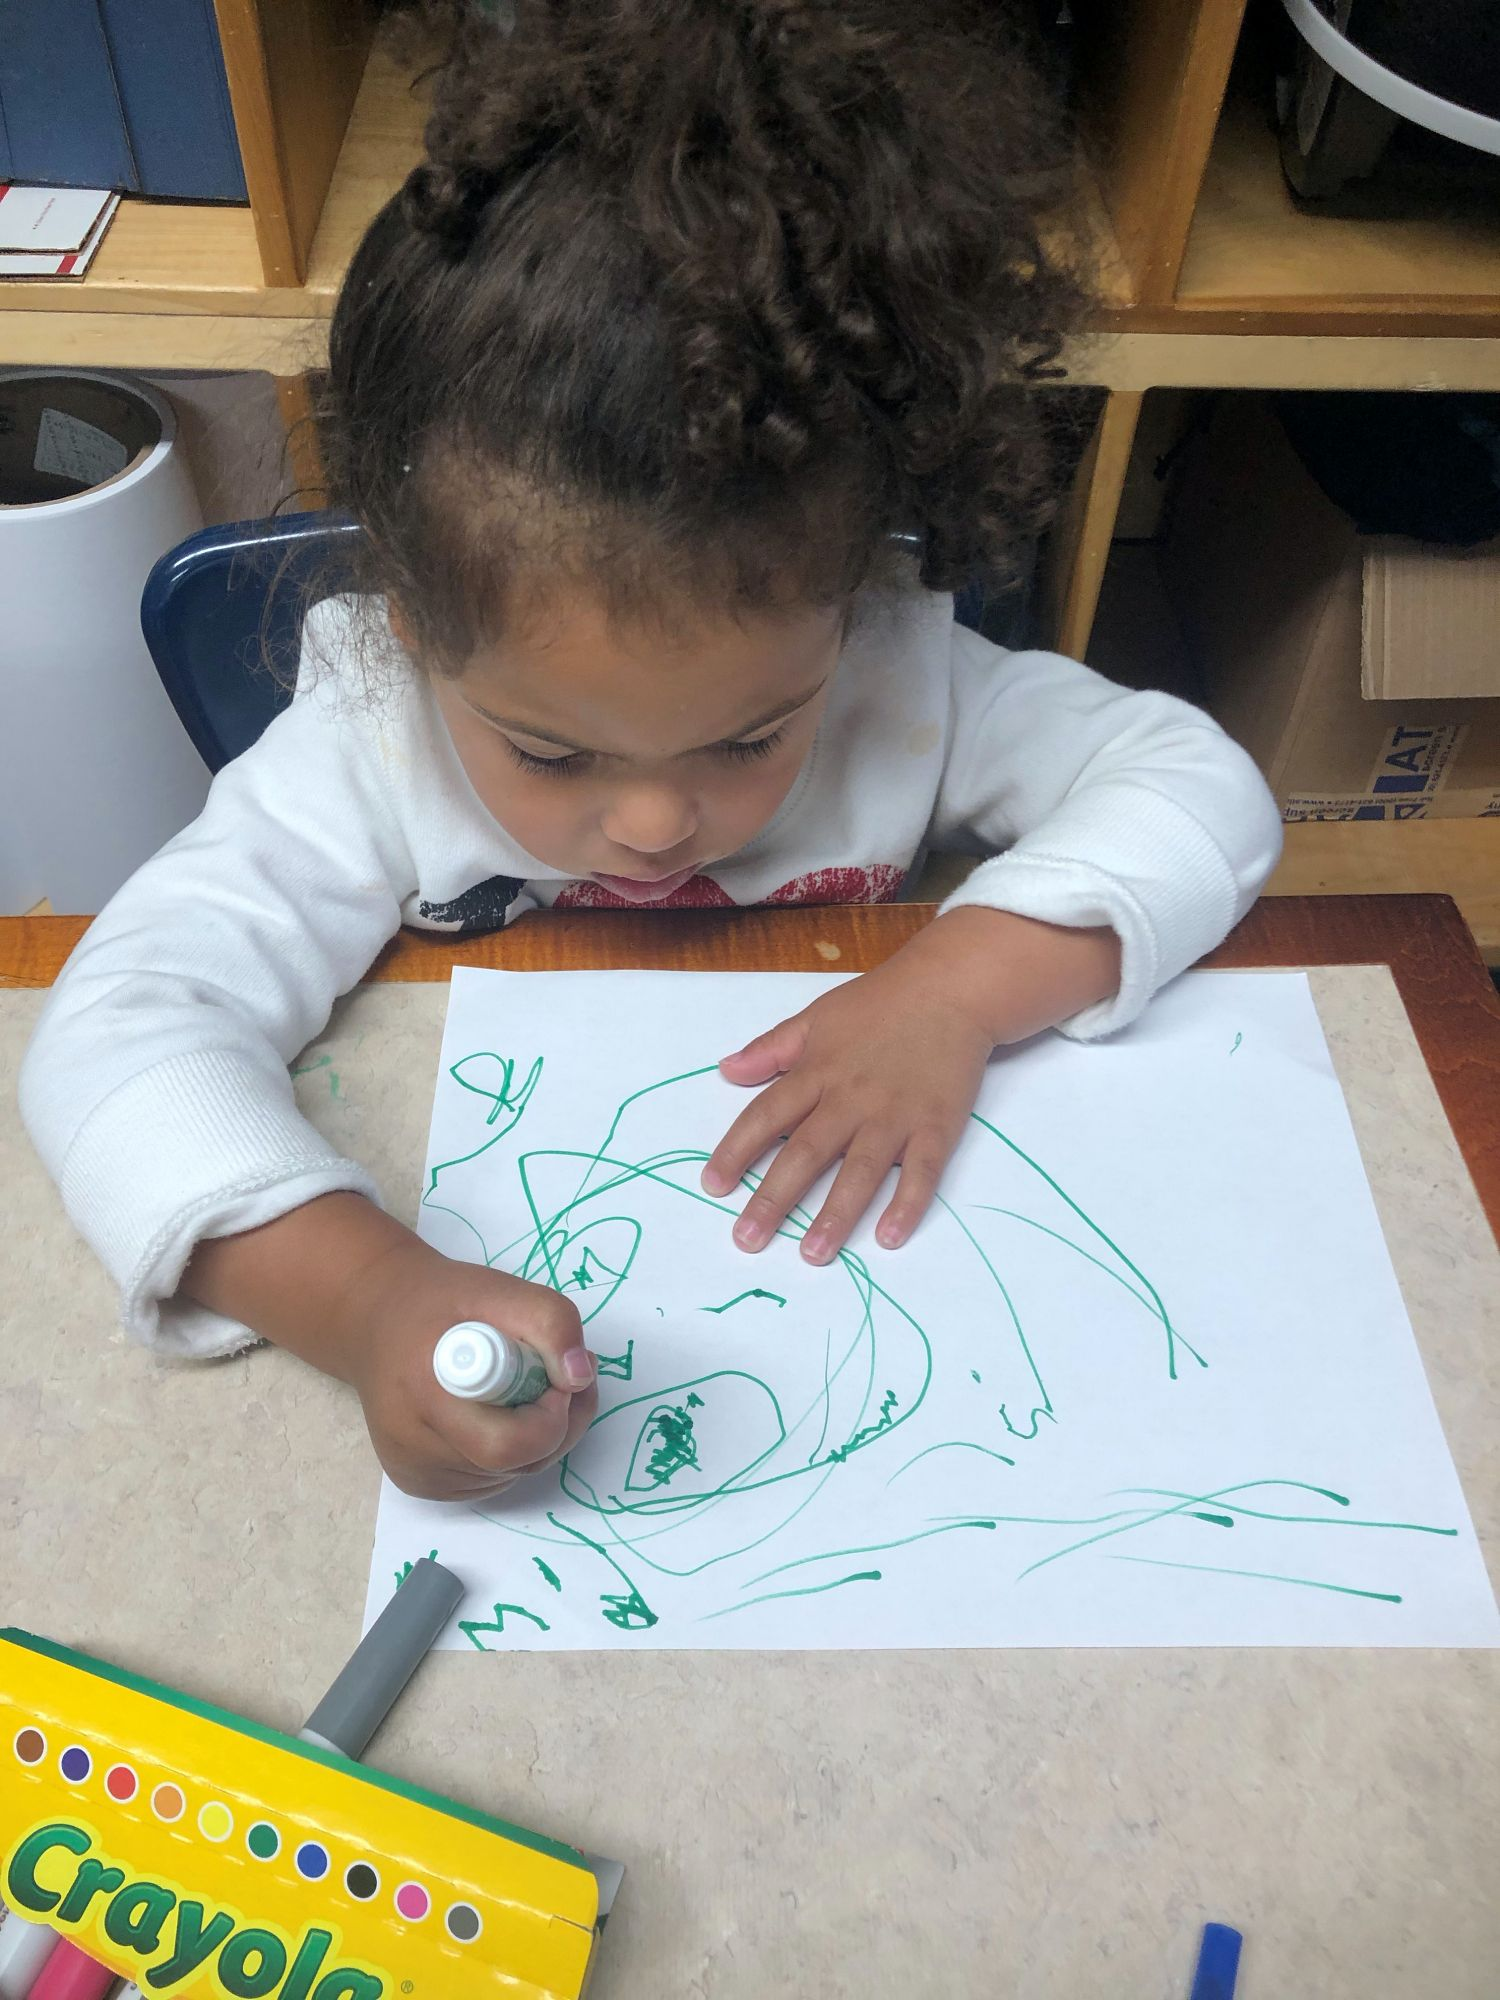 Picture Of Child Sitting At Desk Coloring With Markers